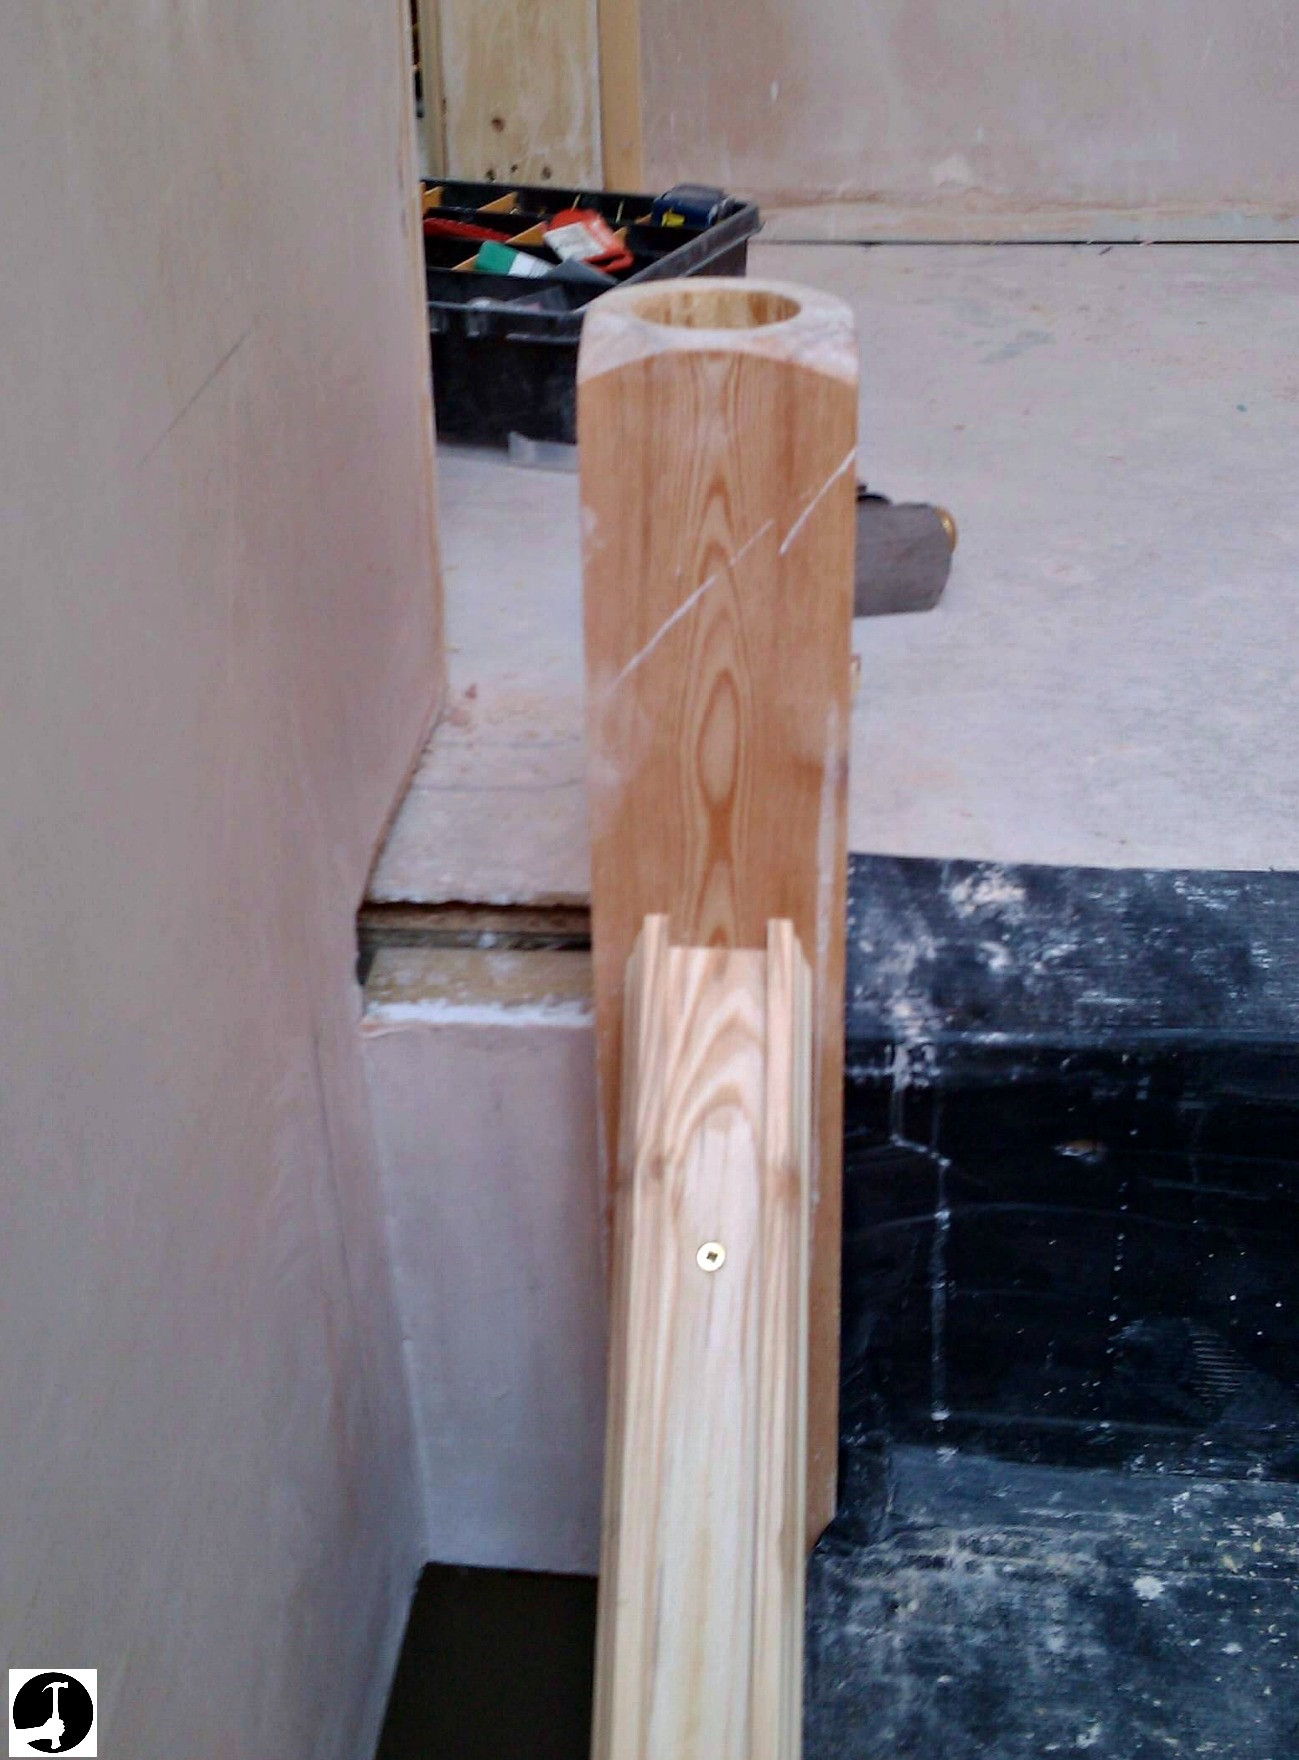 Fitting a half newel to finish off teh balustrade